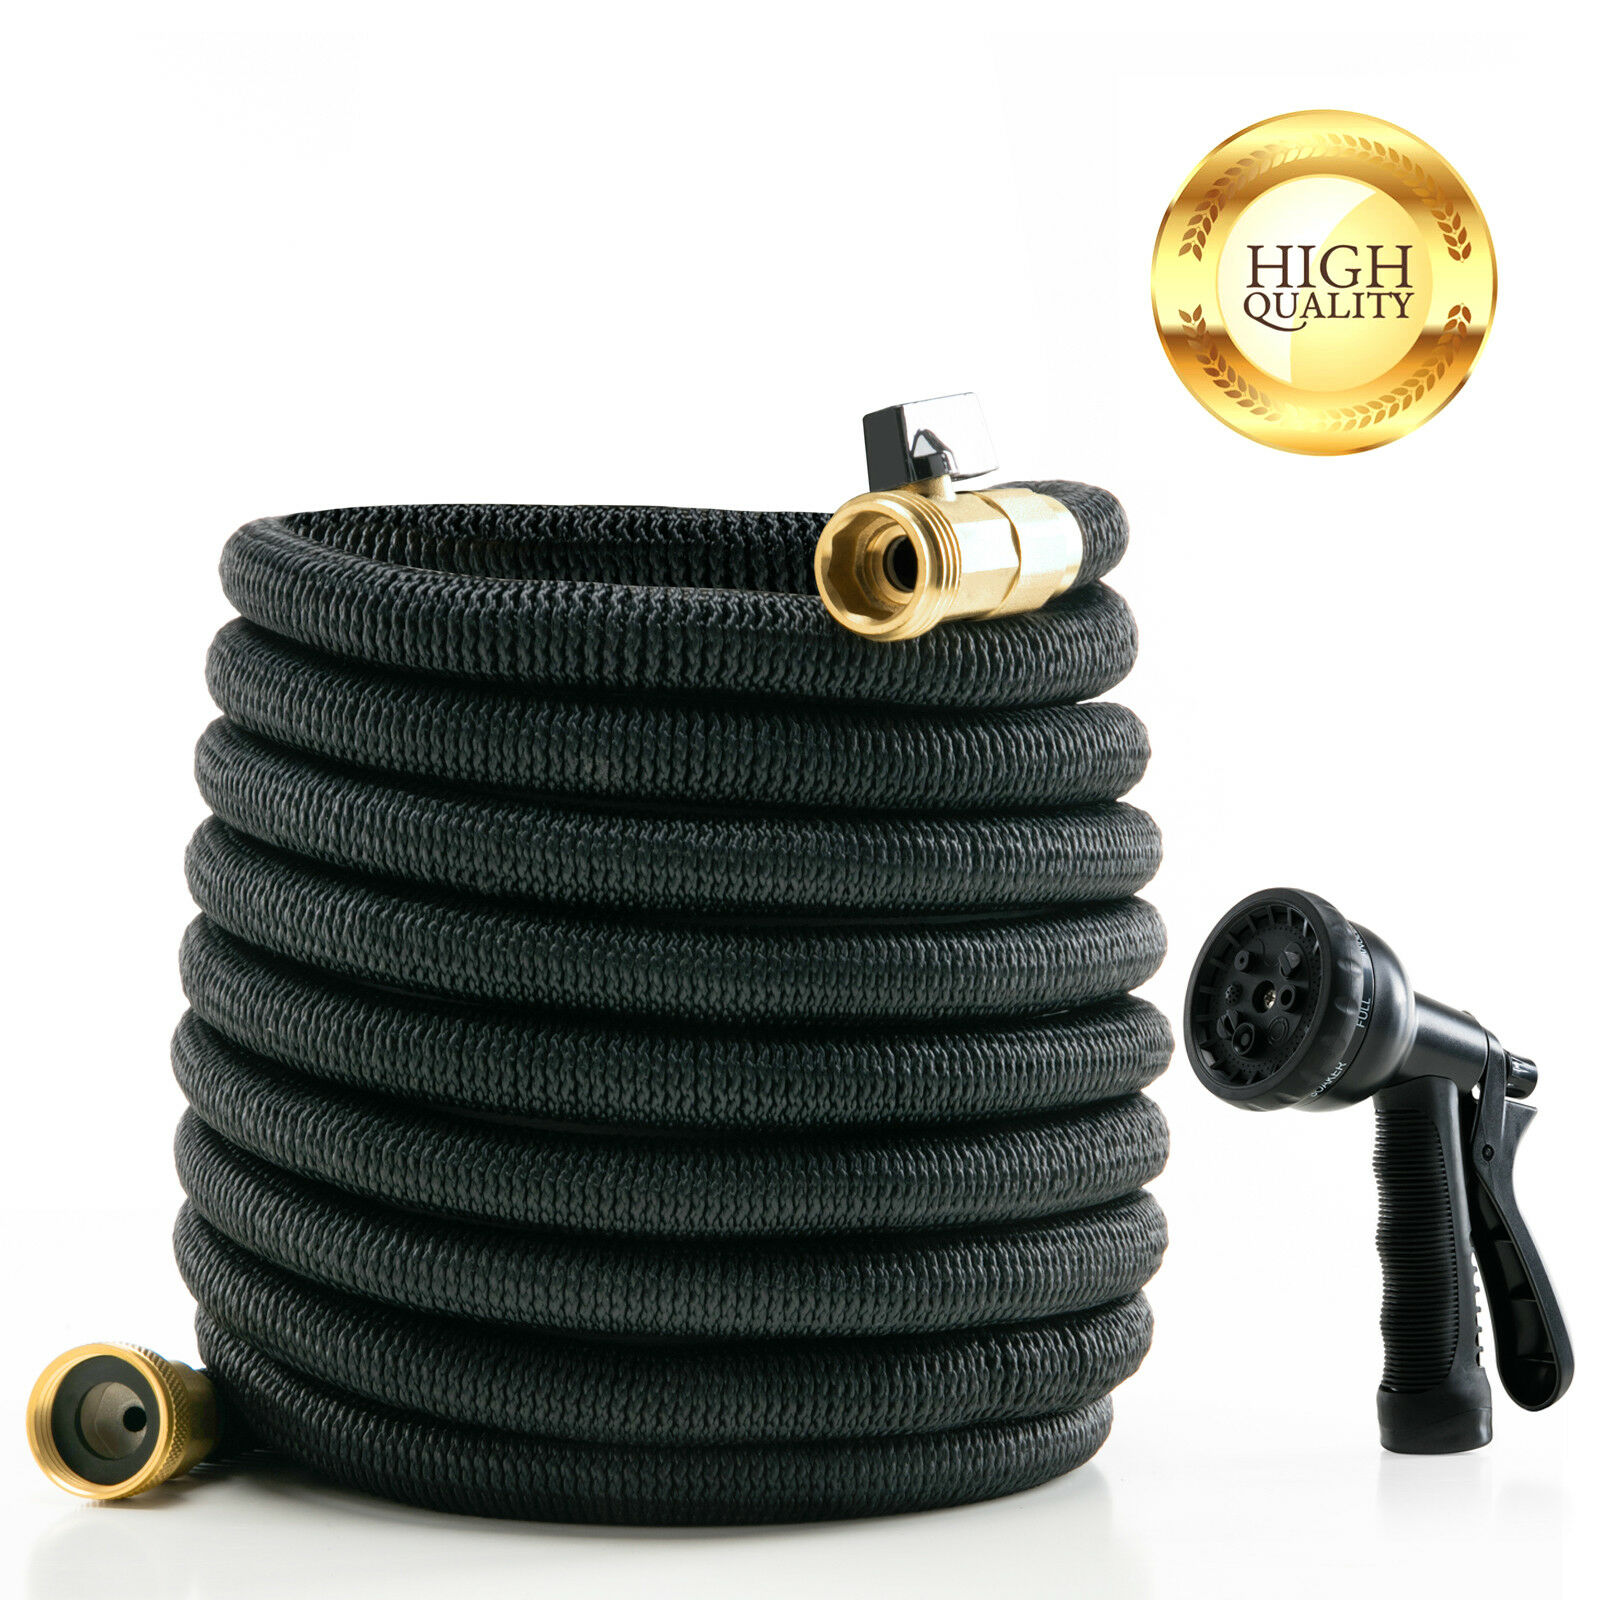 Deluxe Expandable Flexible Garden Water Hose Spray Nozzle 100 Ft - $0.99